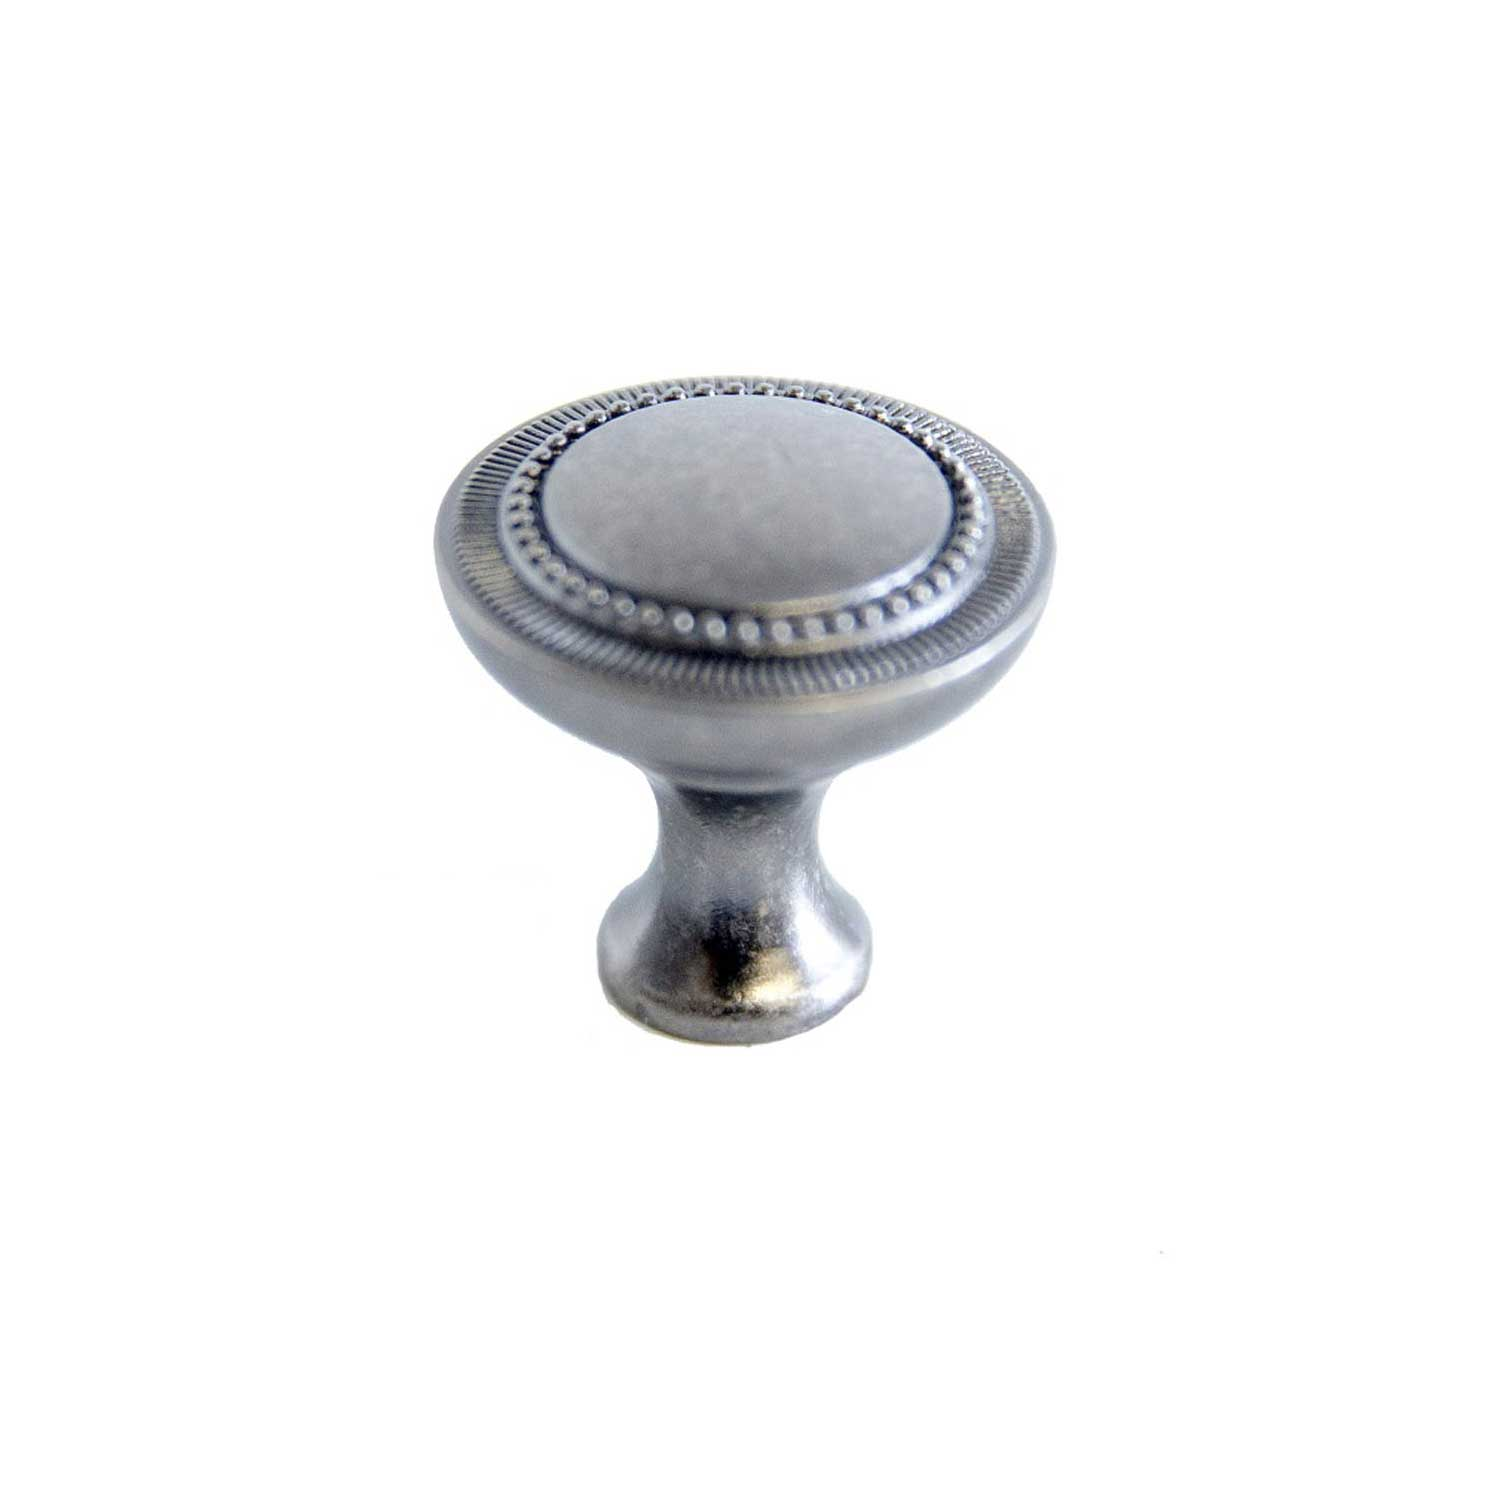 Design House Regal Cabinet Knob, Antique Pewter - 205237